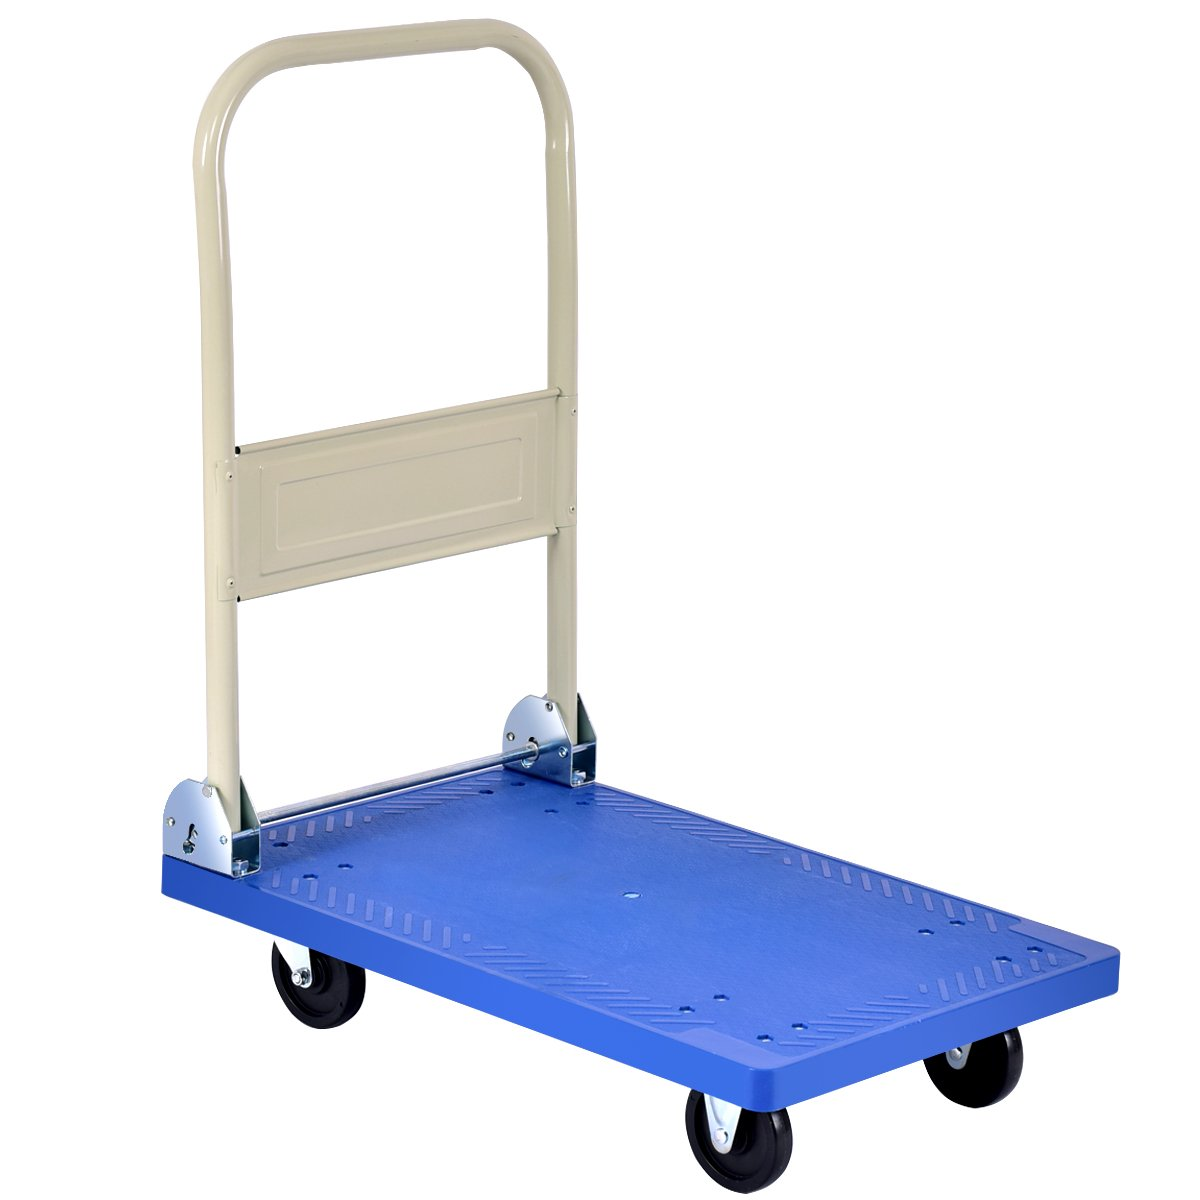 Goplus Folding Platform Cart 220LB Rolling Flatbed Cart Hand Platform Truck Push Dolly for Loading